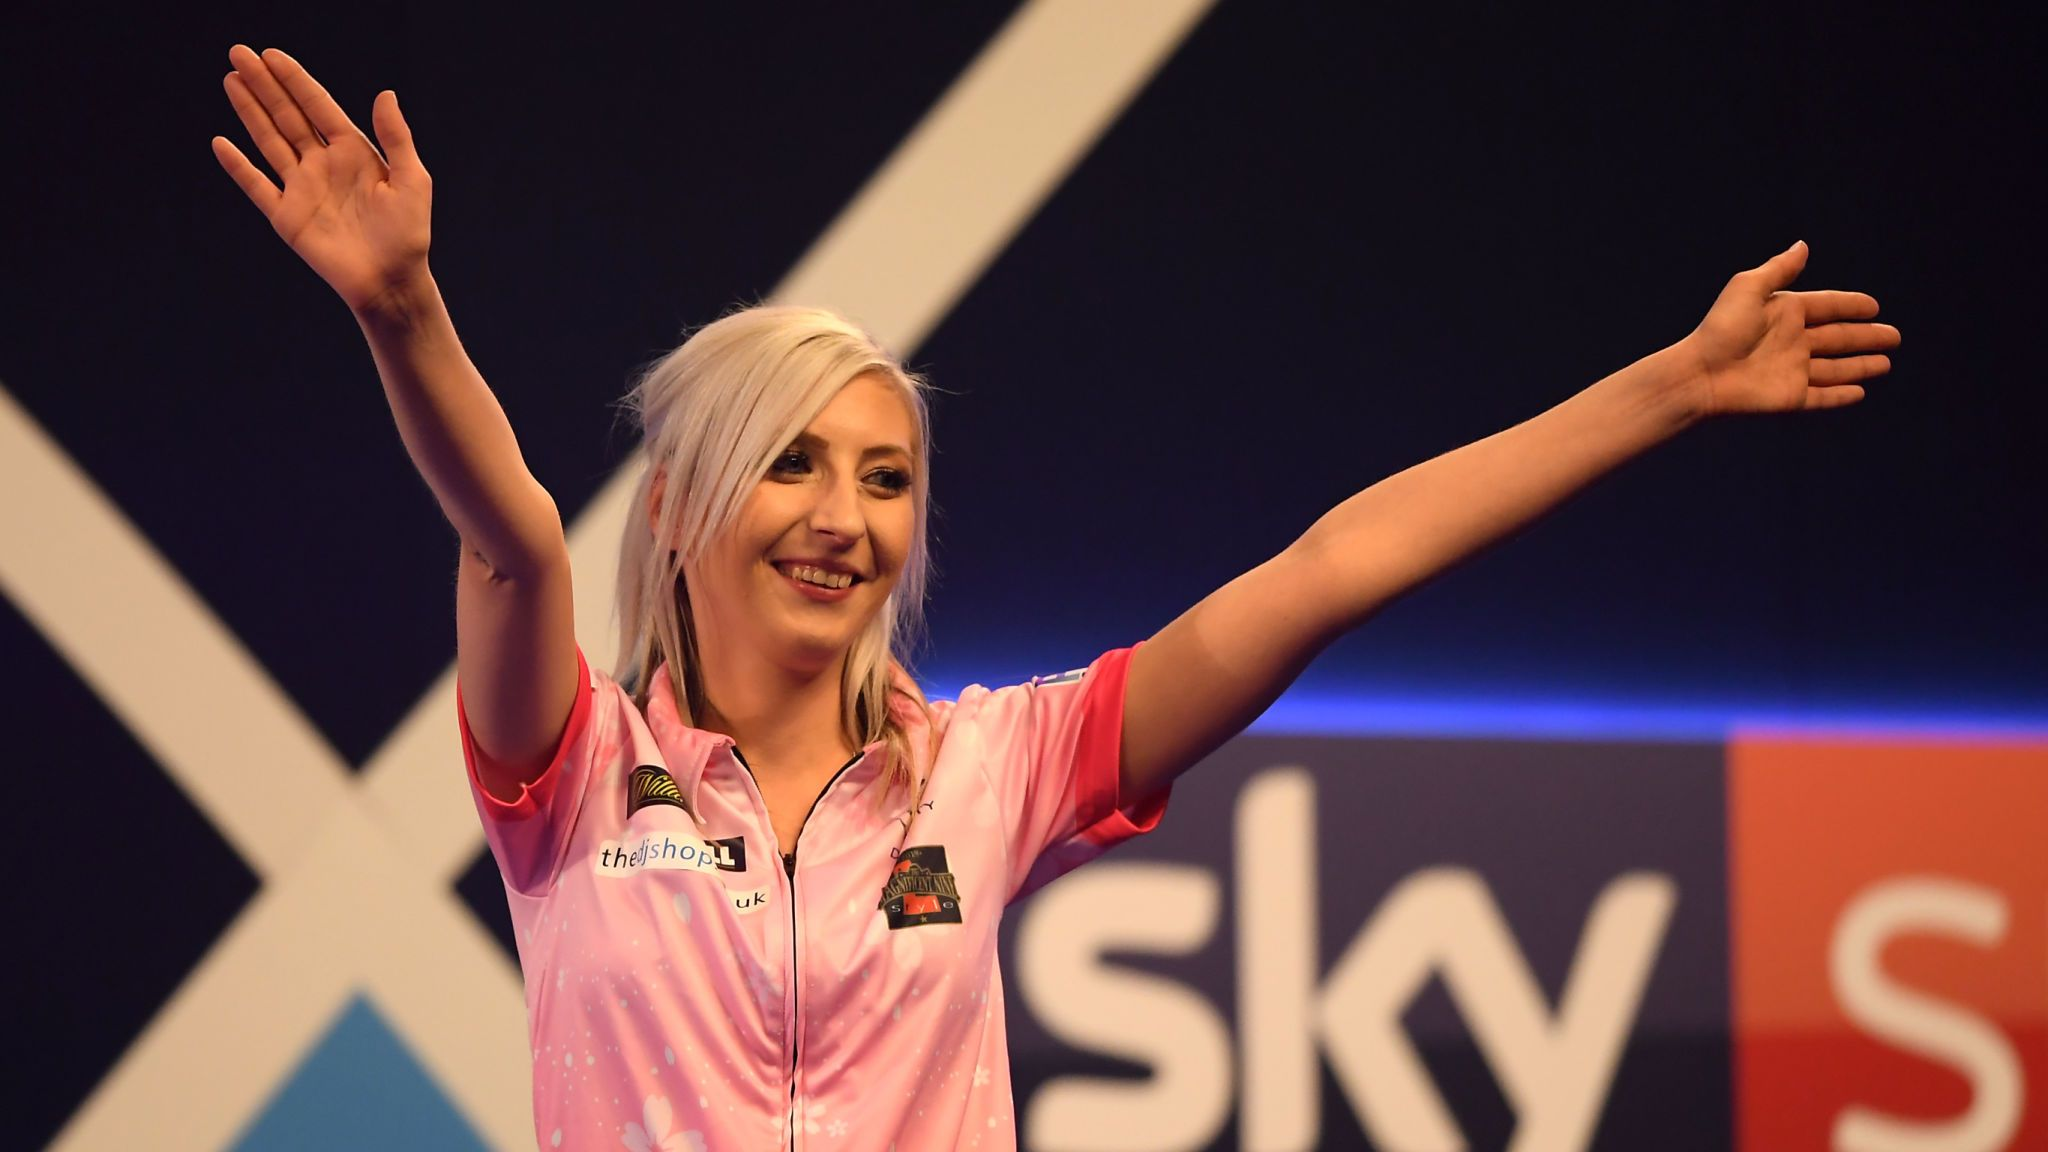 Fallon Sherrock female darts player